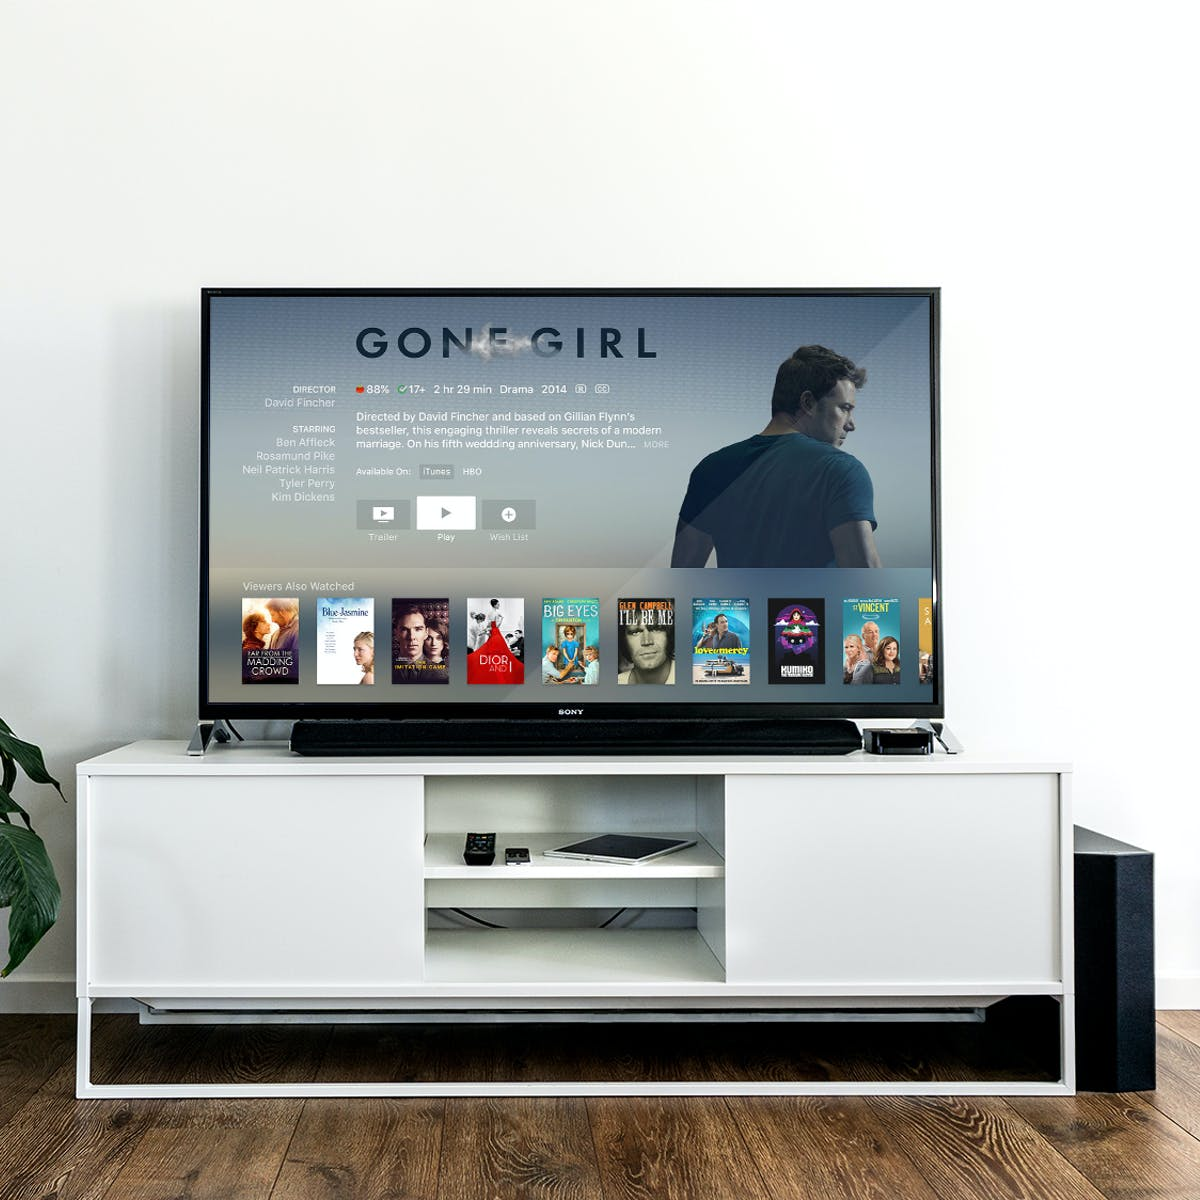 Smart TV Upgrades for Every Budget